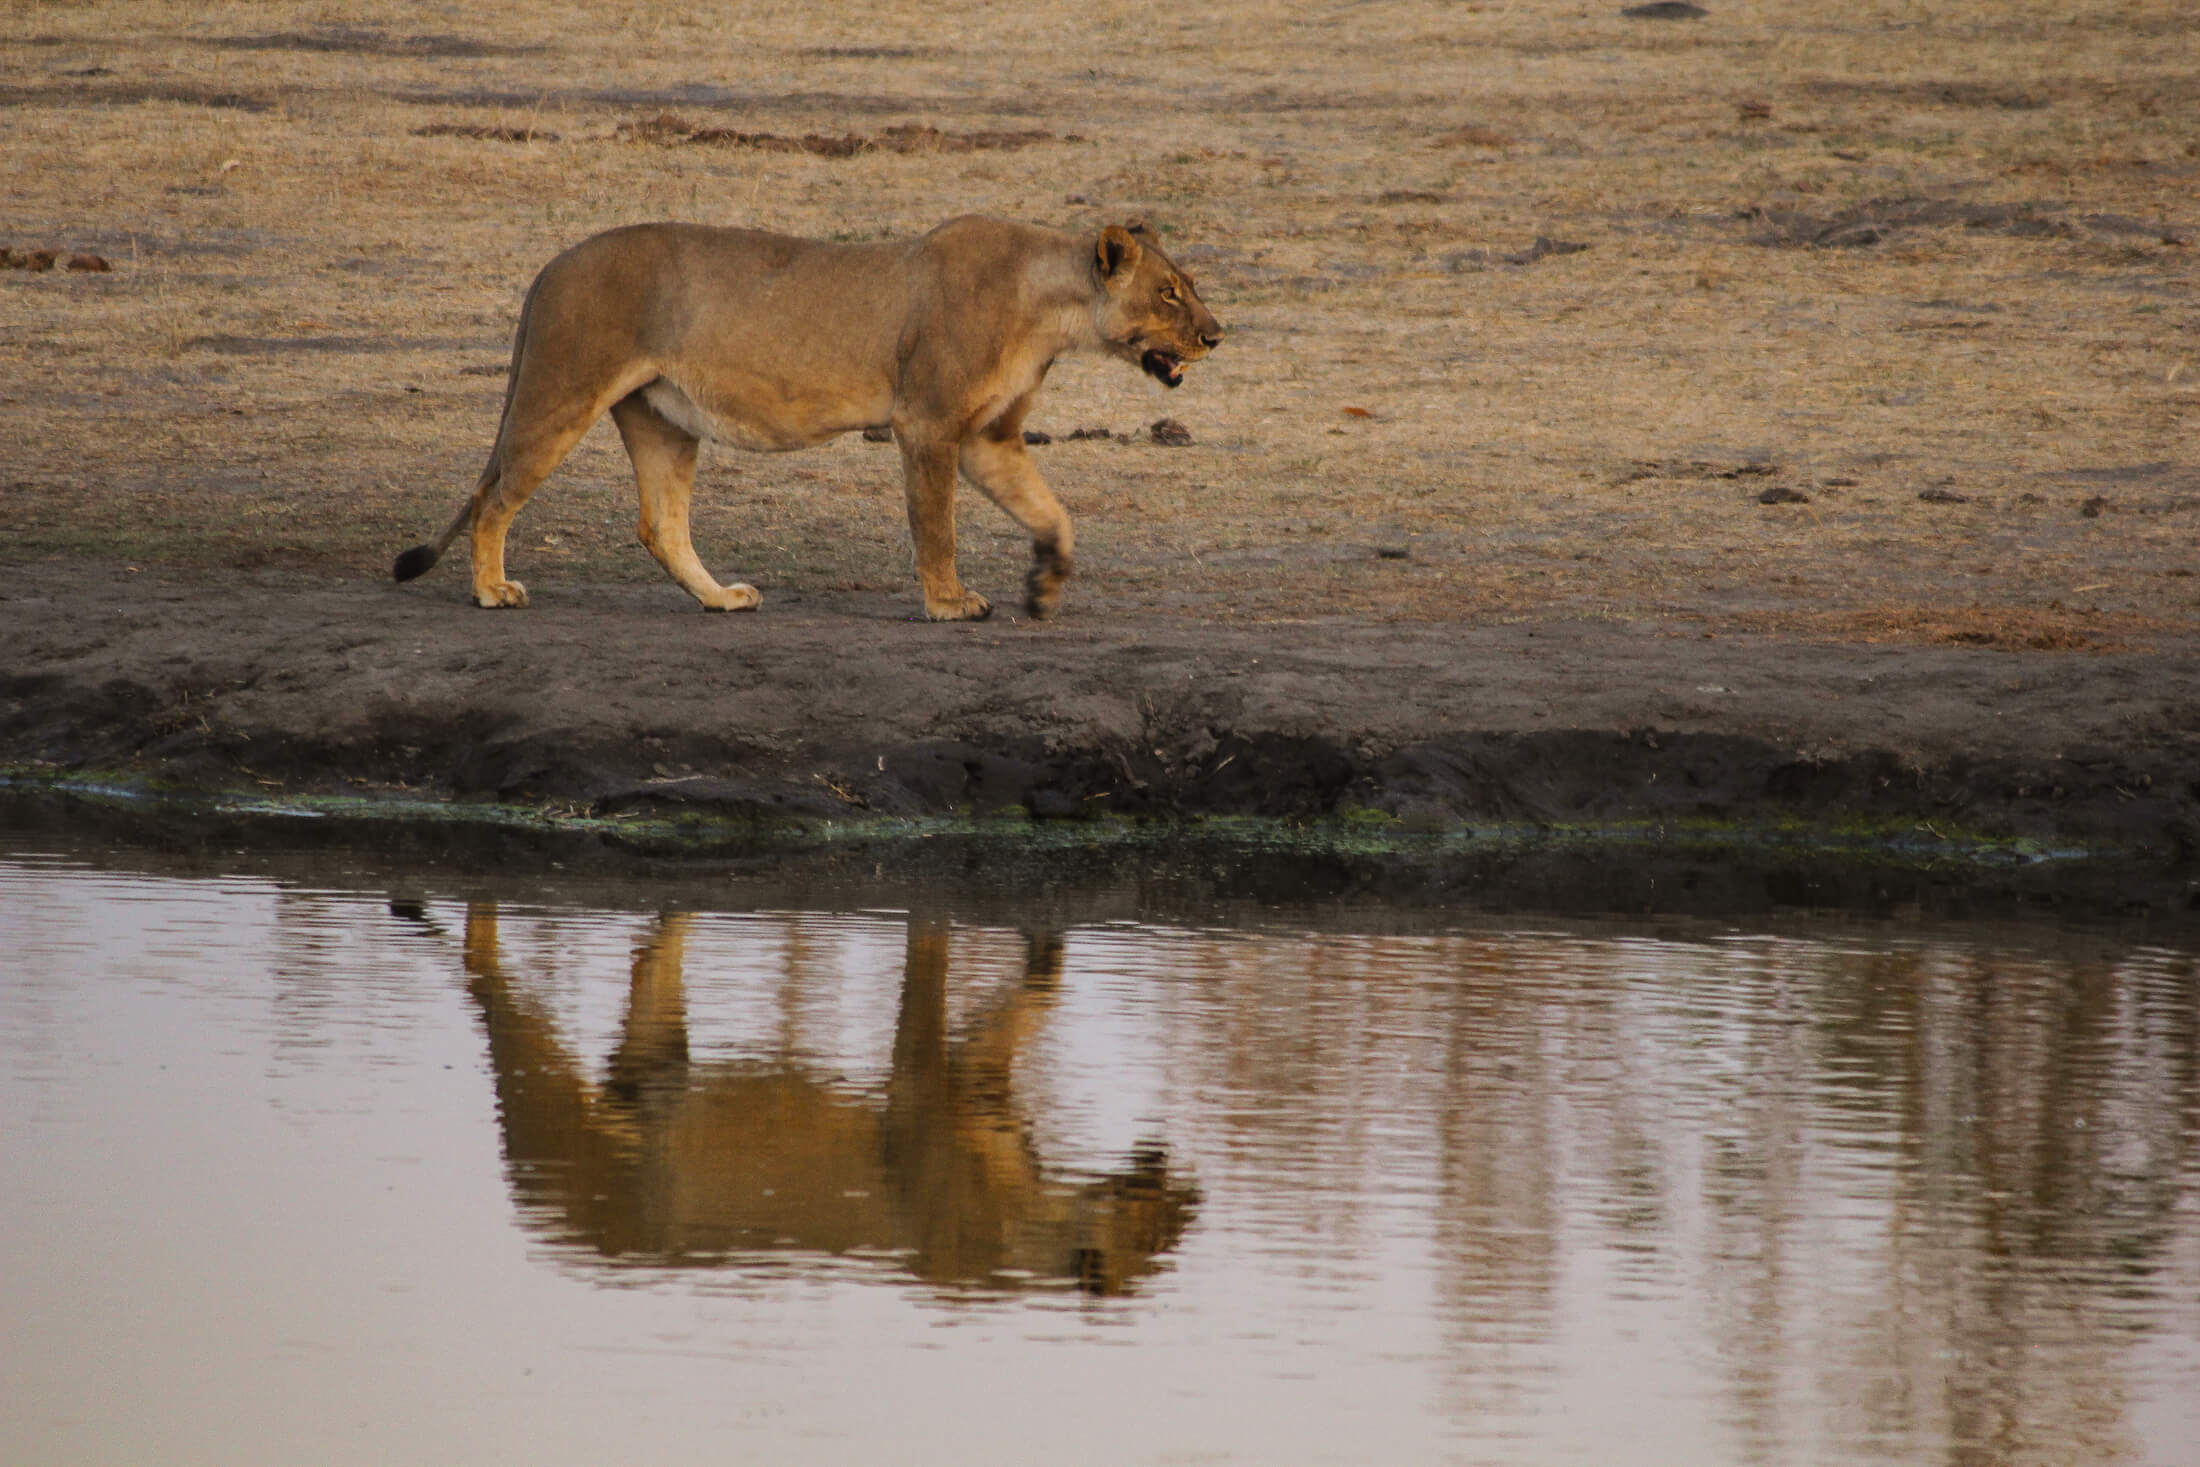 This thirsty cat found refreshment at Somalisa Camp's waterhole. © Gary Lotter